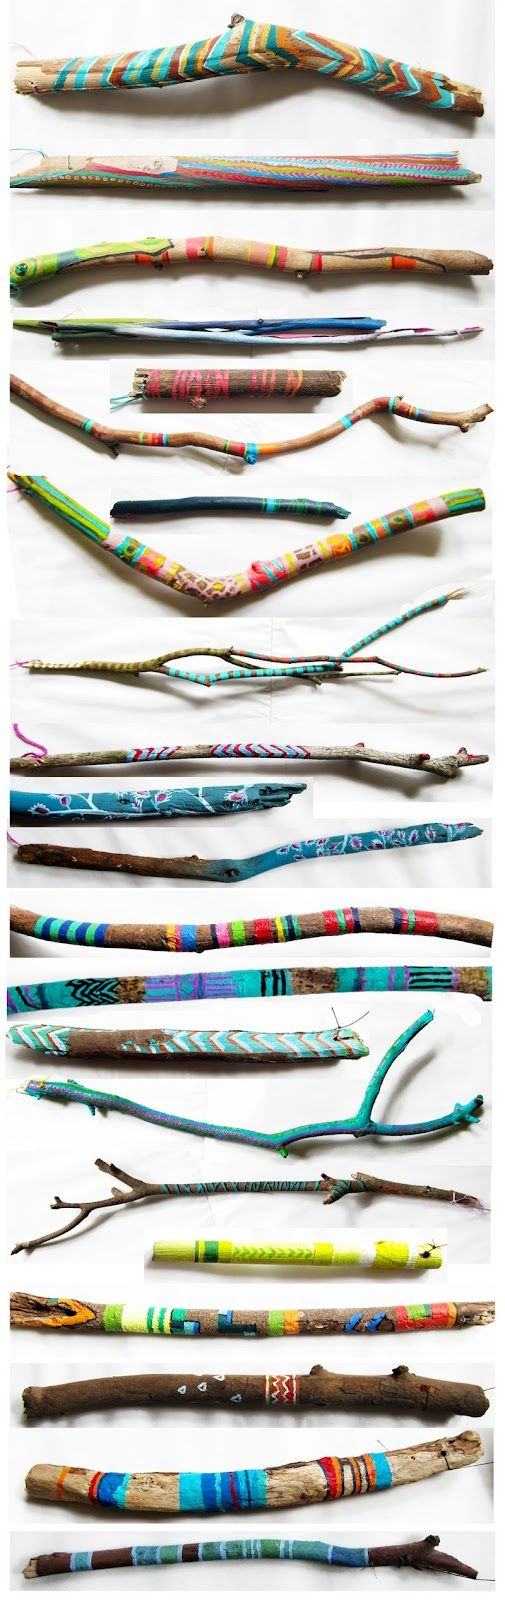 Danielle Christine's DIY and Different Finds: Different: Art in Nature& Jewelry Inspiration // This would be perfect for crafting walking sticks for hiking!